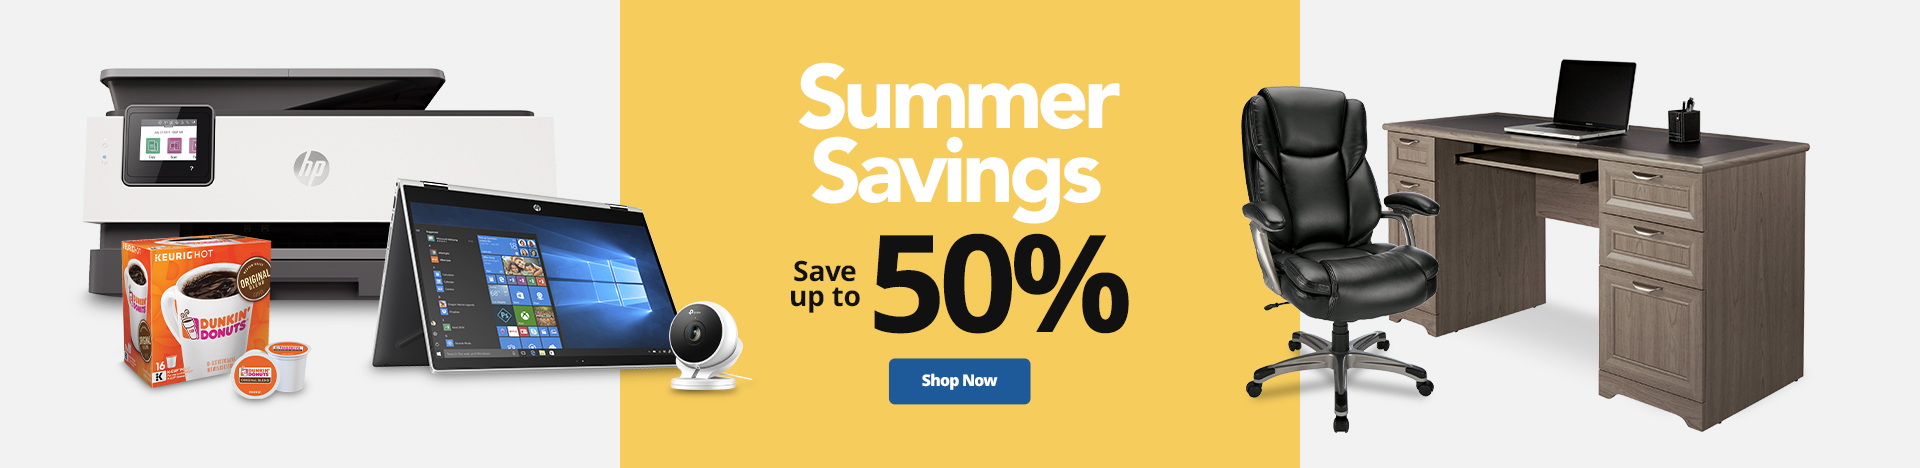 Summer Of Savings - Save Up To 50%